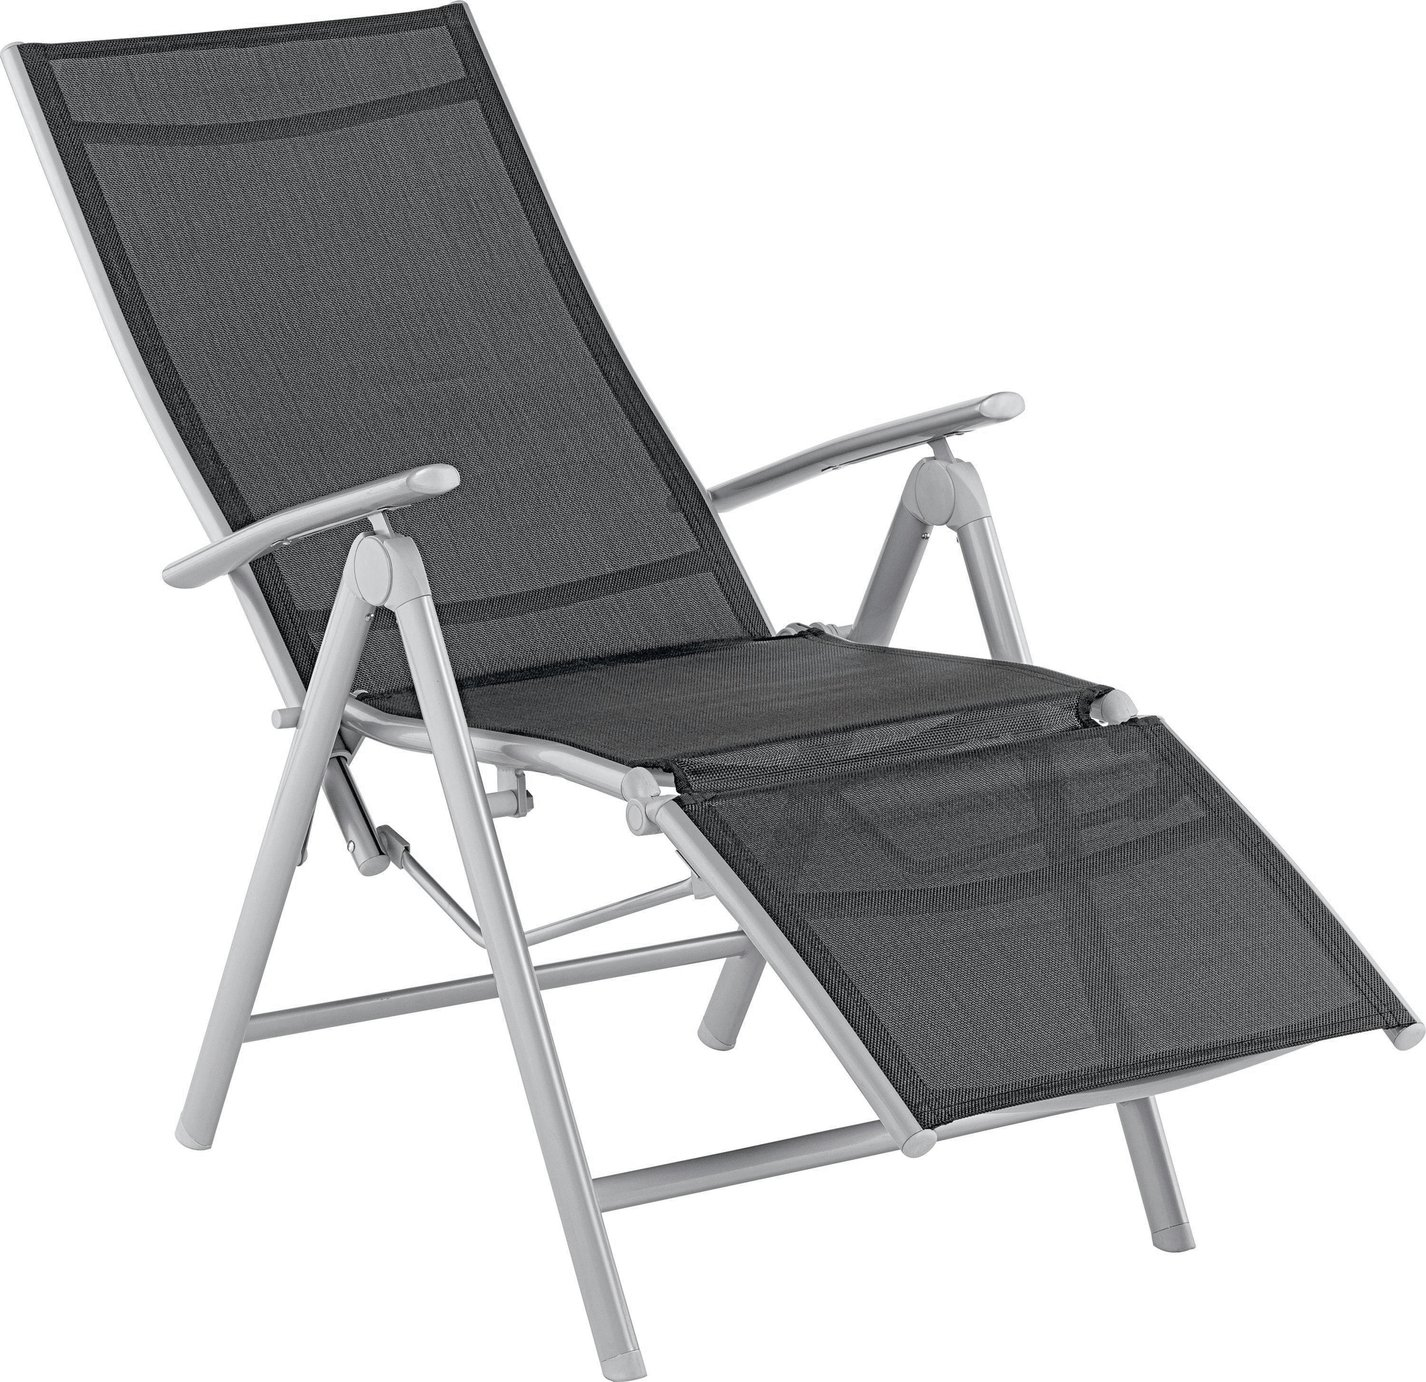 Malibu - Recliner Chair - Black lowest price